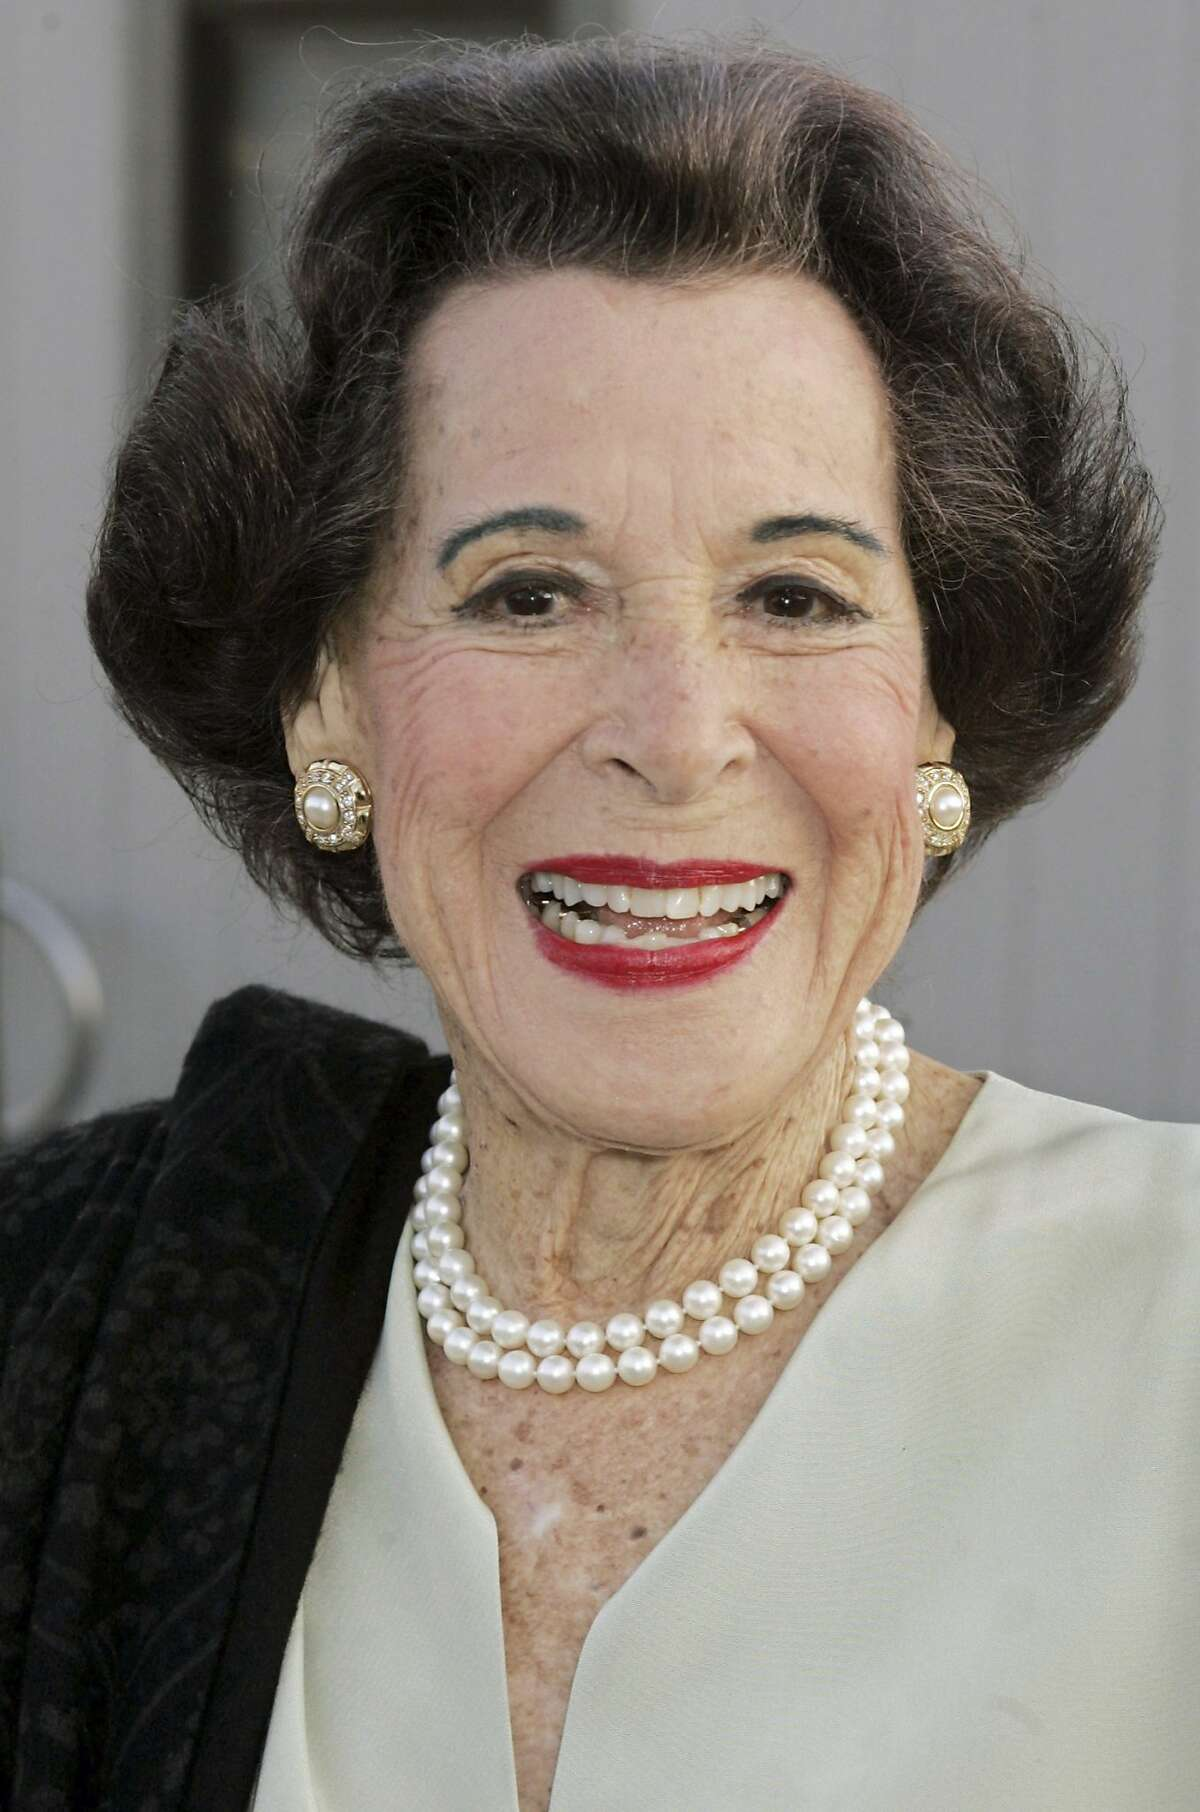 Actress Kitty Carlisle Hart arrives at the the opening of a play in Los Angeles in this April 20, 2005 file photo. Carlisle Hart died at the age of 96, her son announced April 18, 2007. REUTERS/Fred Prouser/Files (UNITED STATES)